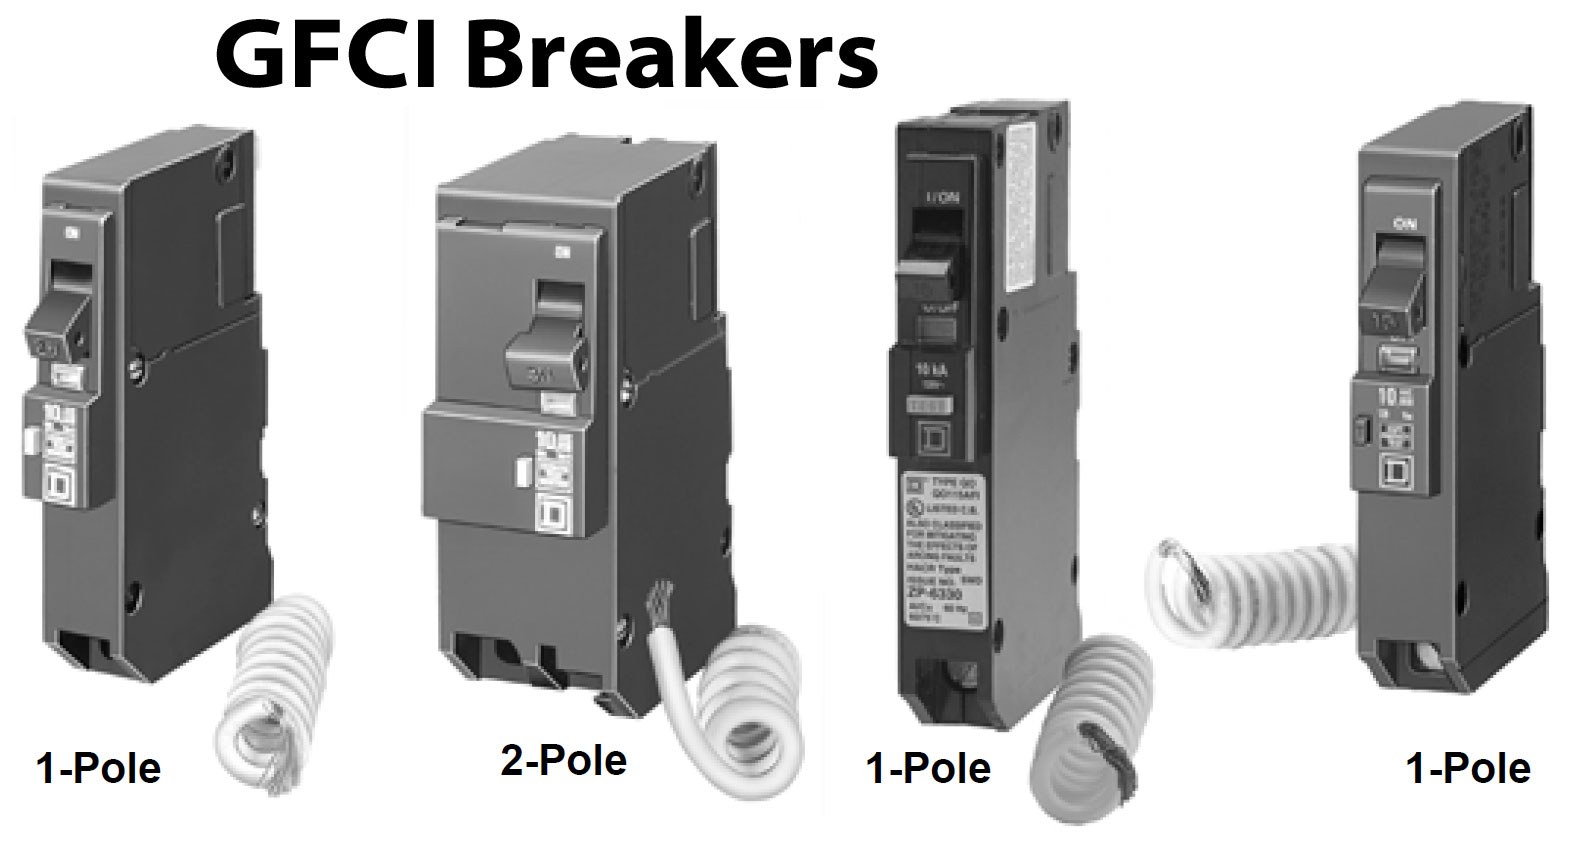 GFCI circuit breakers. Larger image